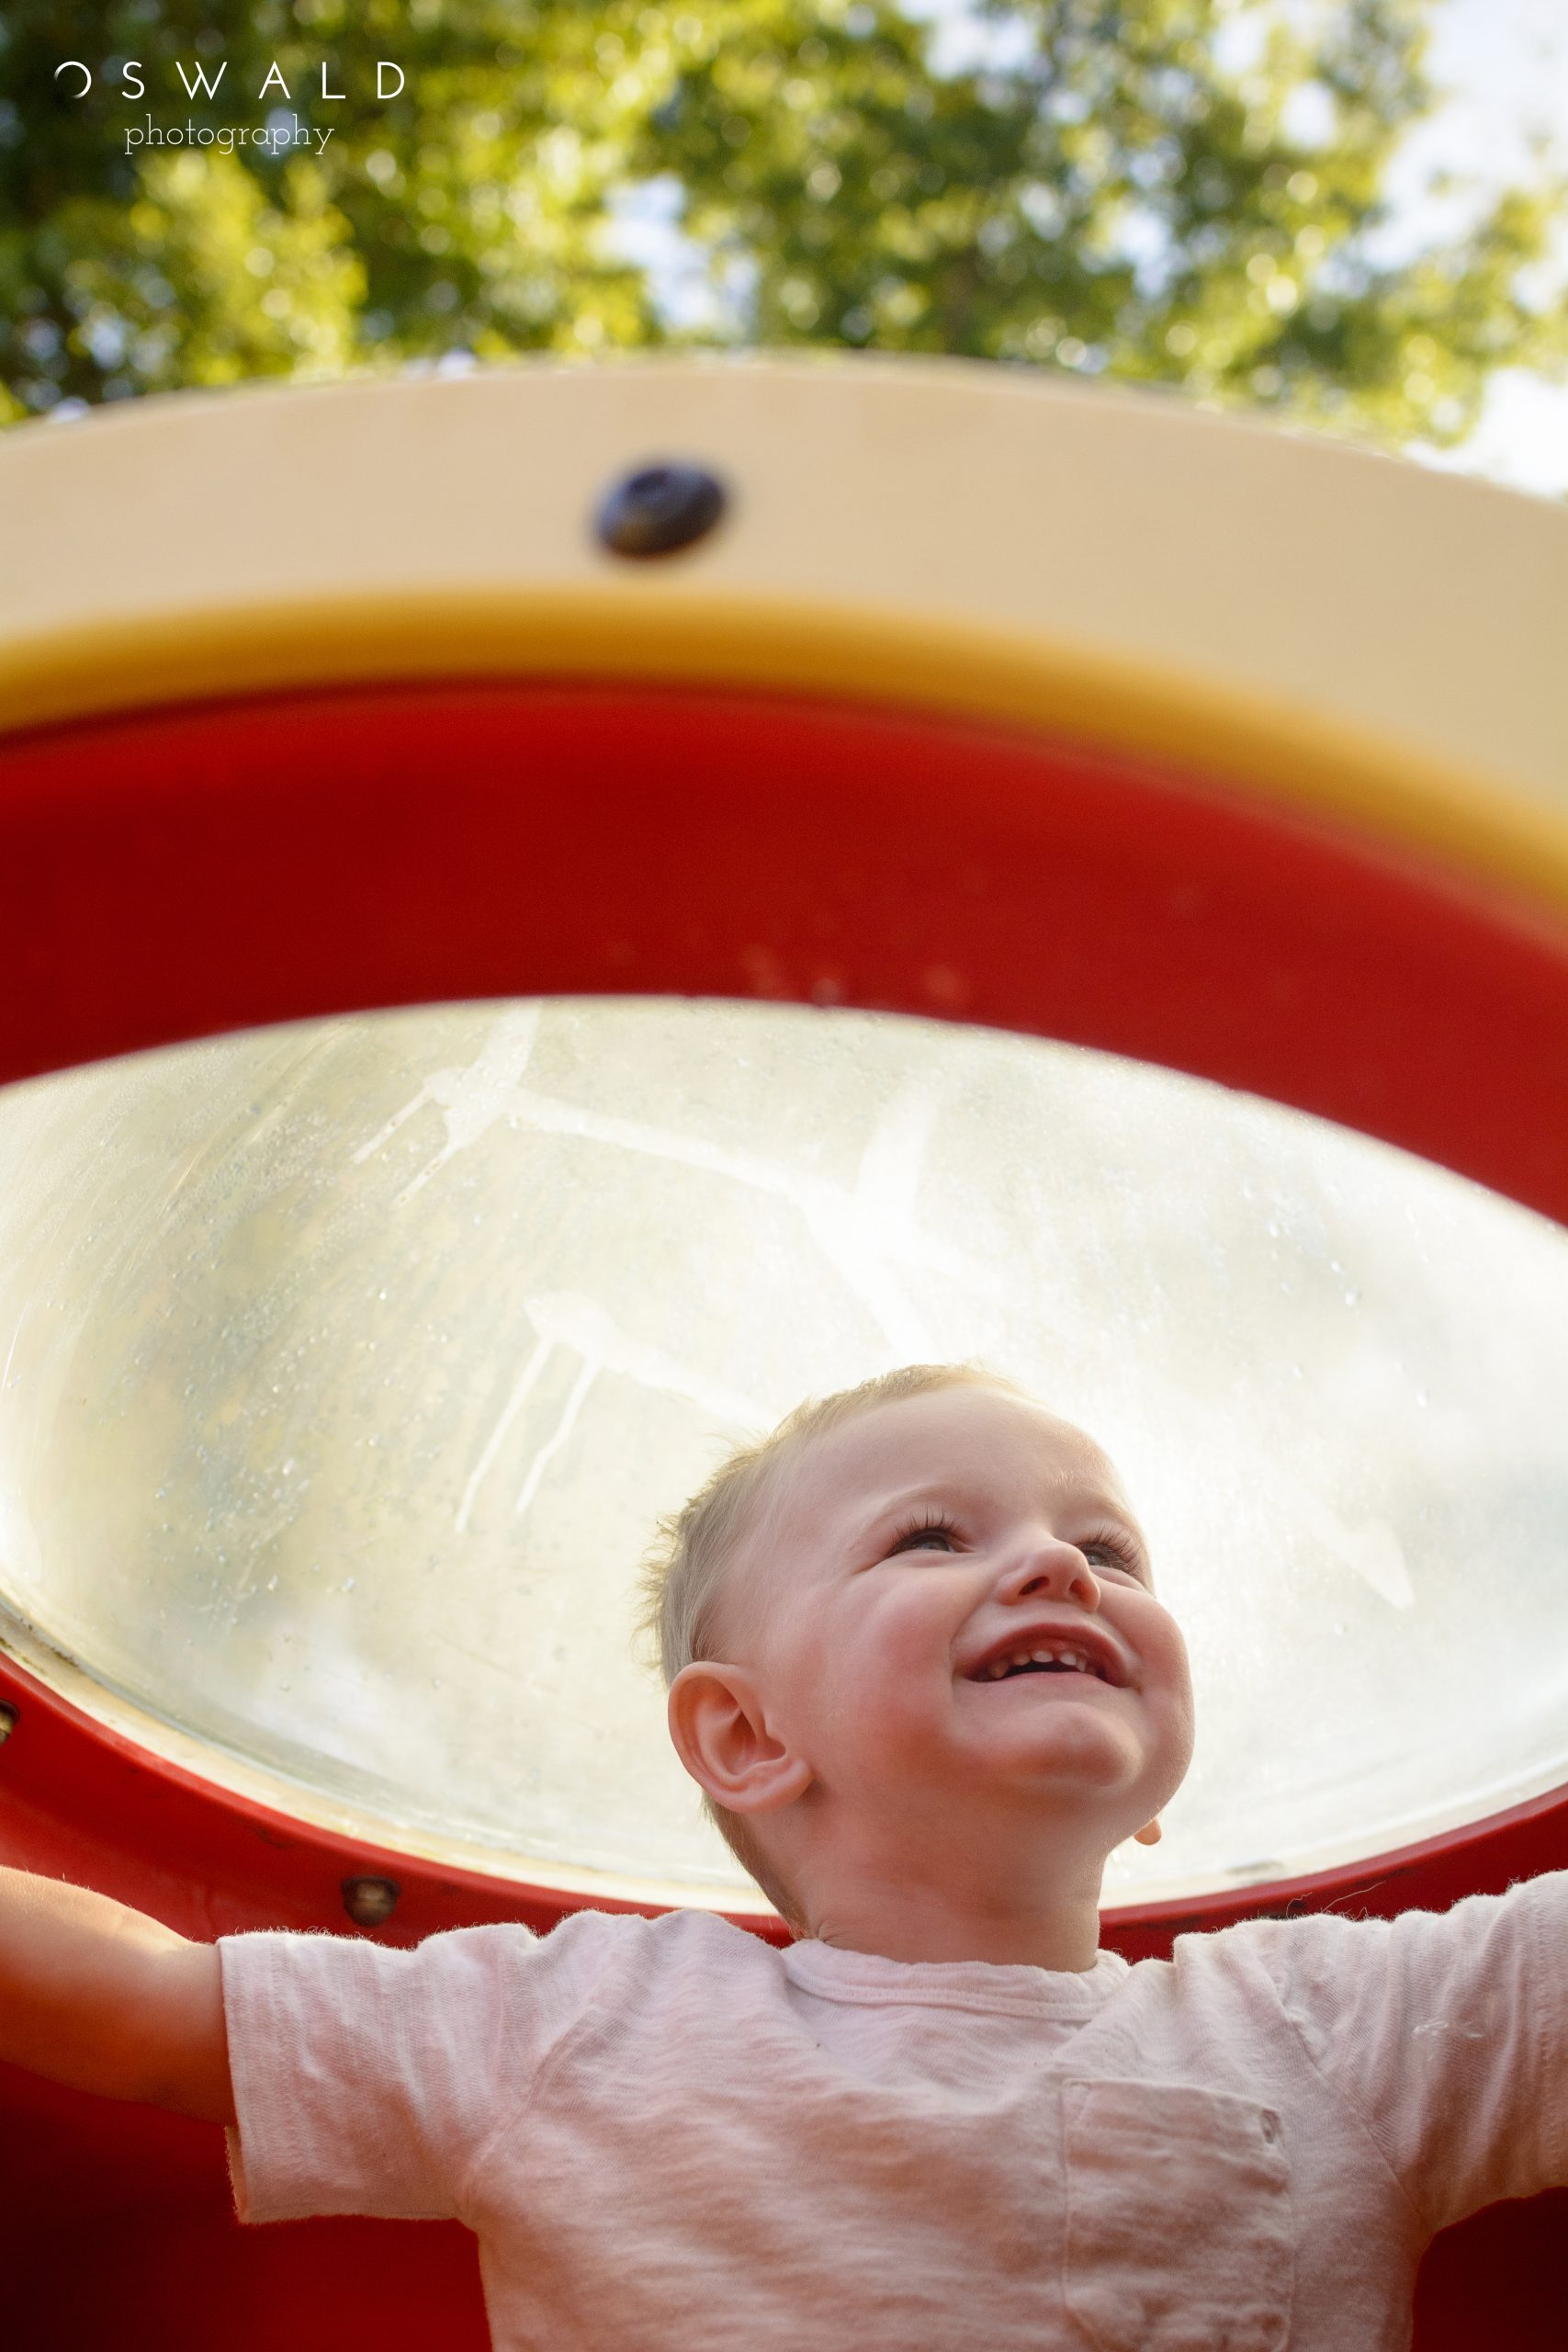 A young boy sits in a playground spaceship, peering out into space.